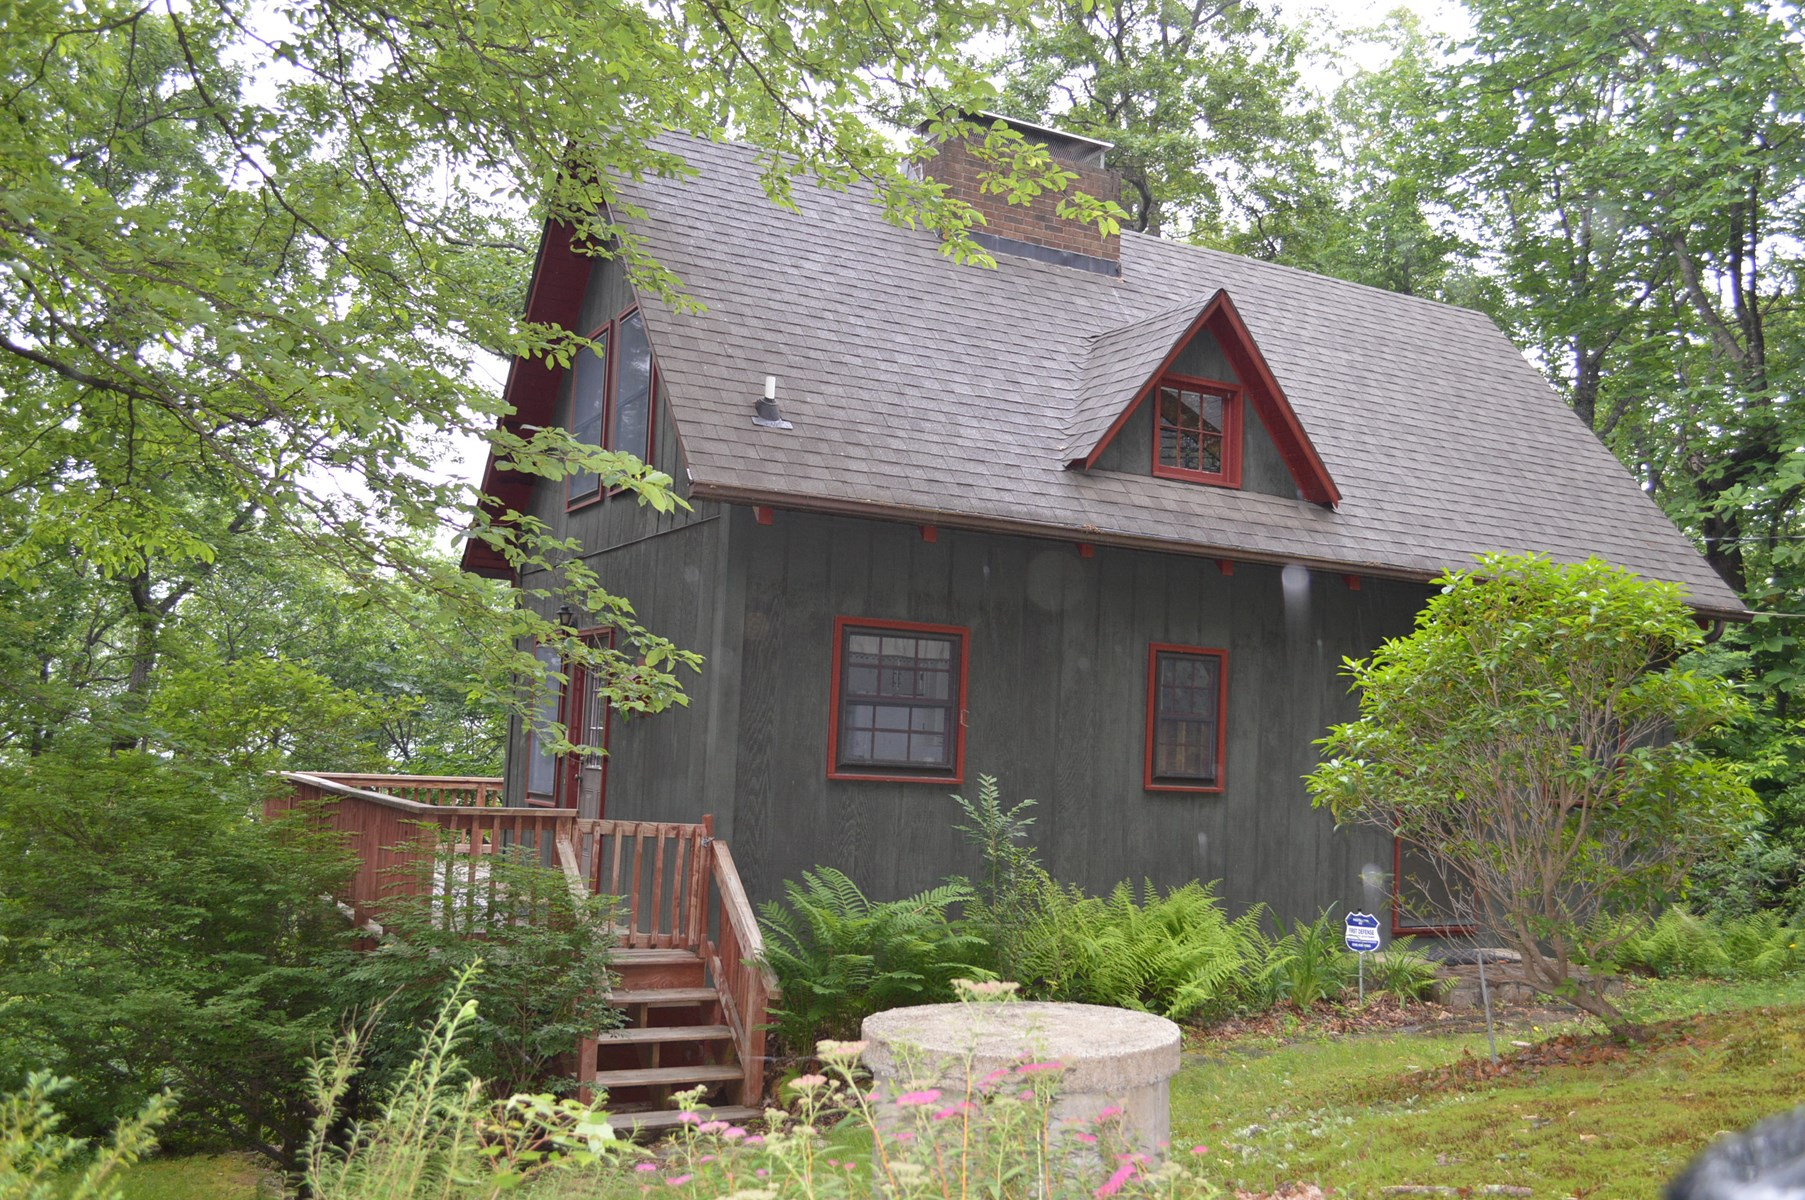 Mountain Home for Sale in Roaring Gap - Alleghany County